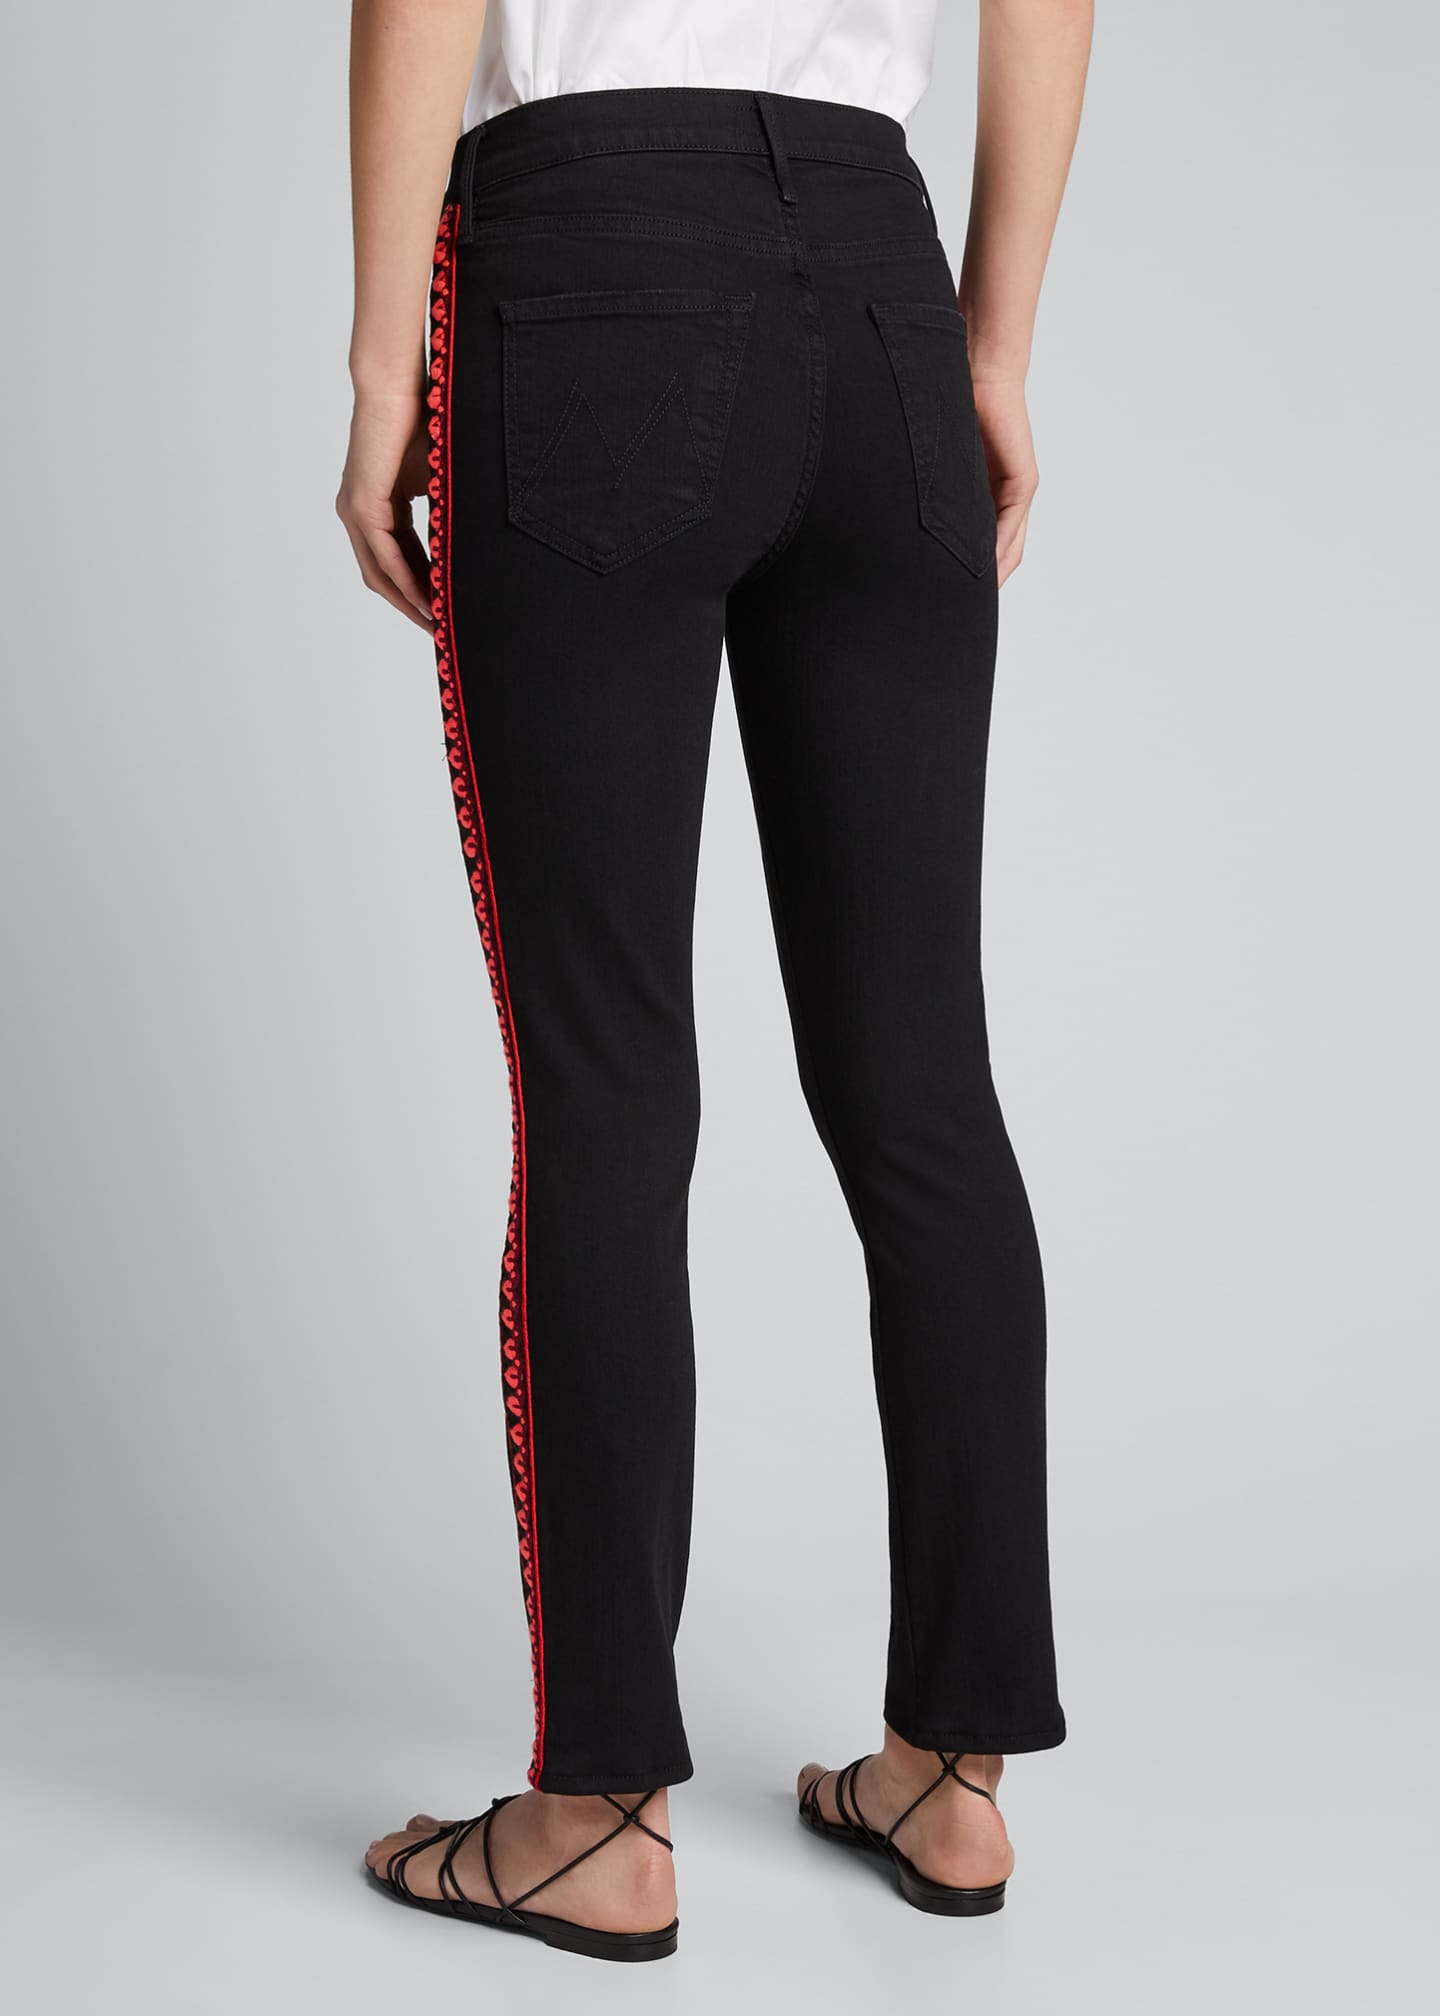 Image 2 of 5: The Mid-Rise Dazzler Ankle Jeans